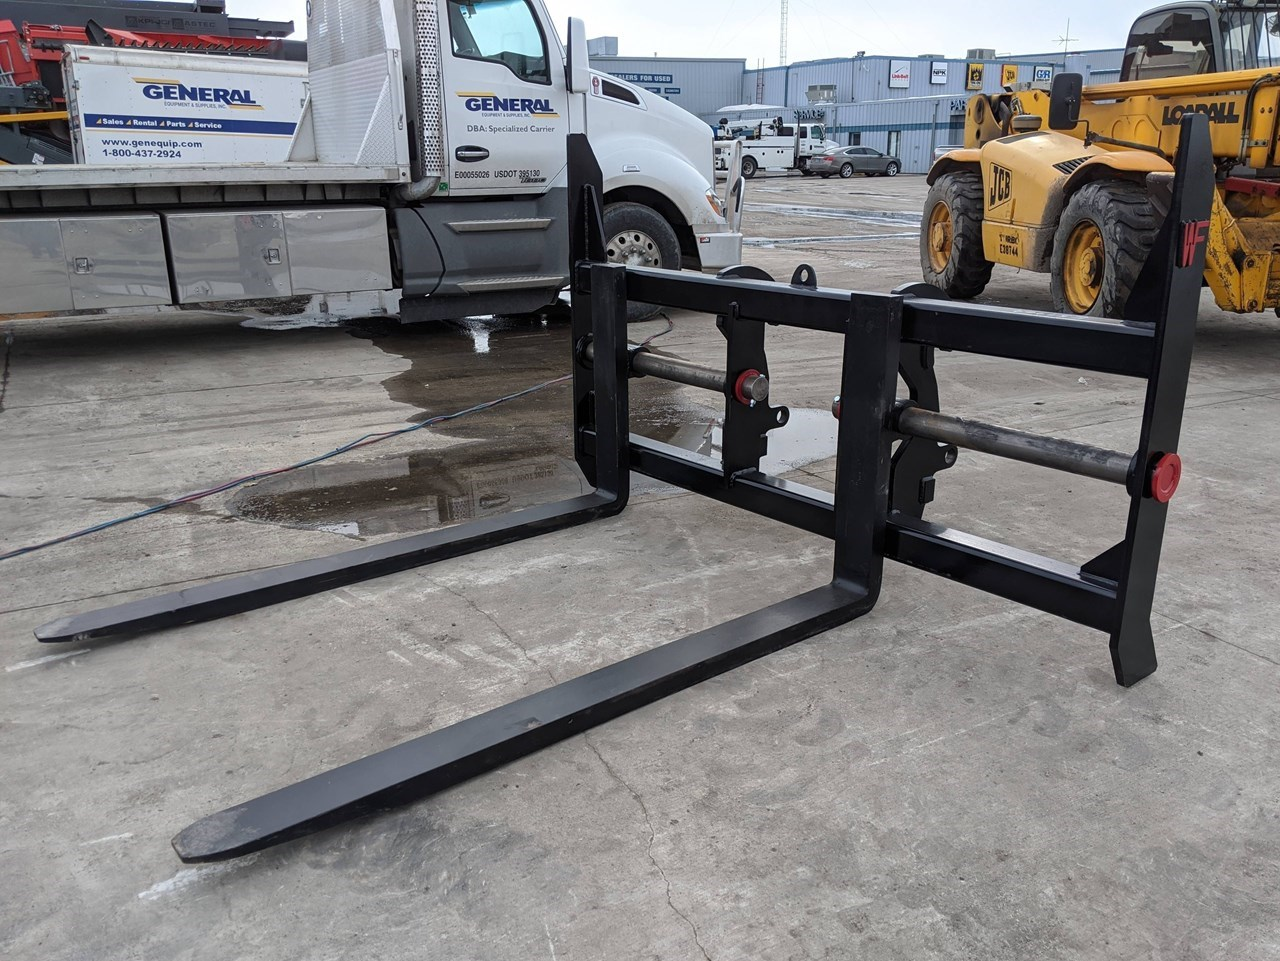 2020 WAHPETON FABRICATION WA200/250/320F Loader Fork For Sale